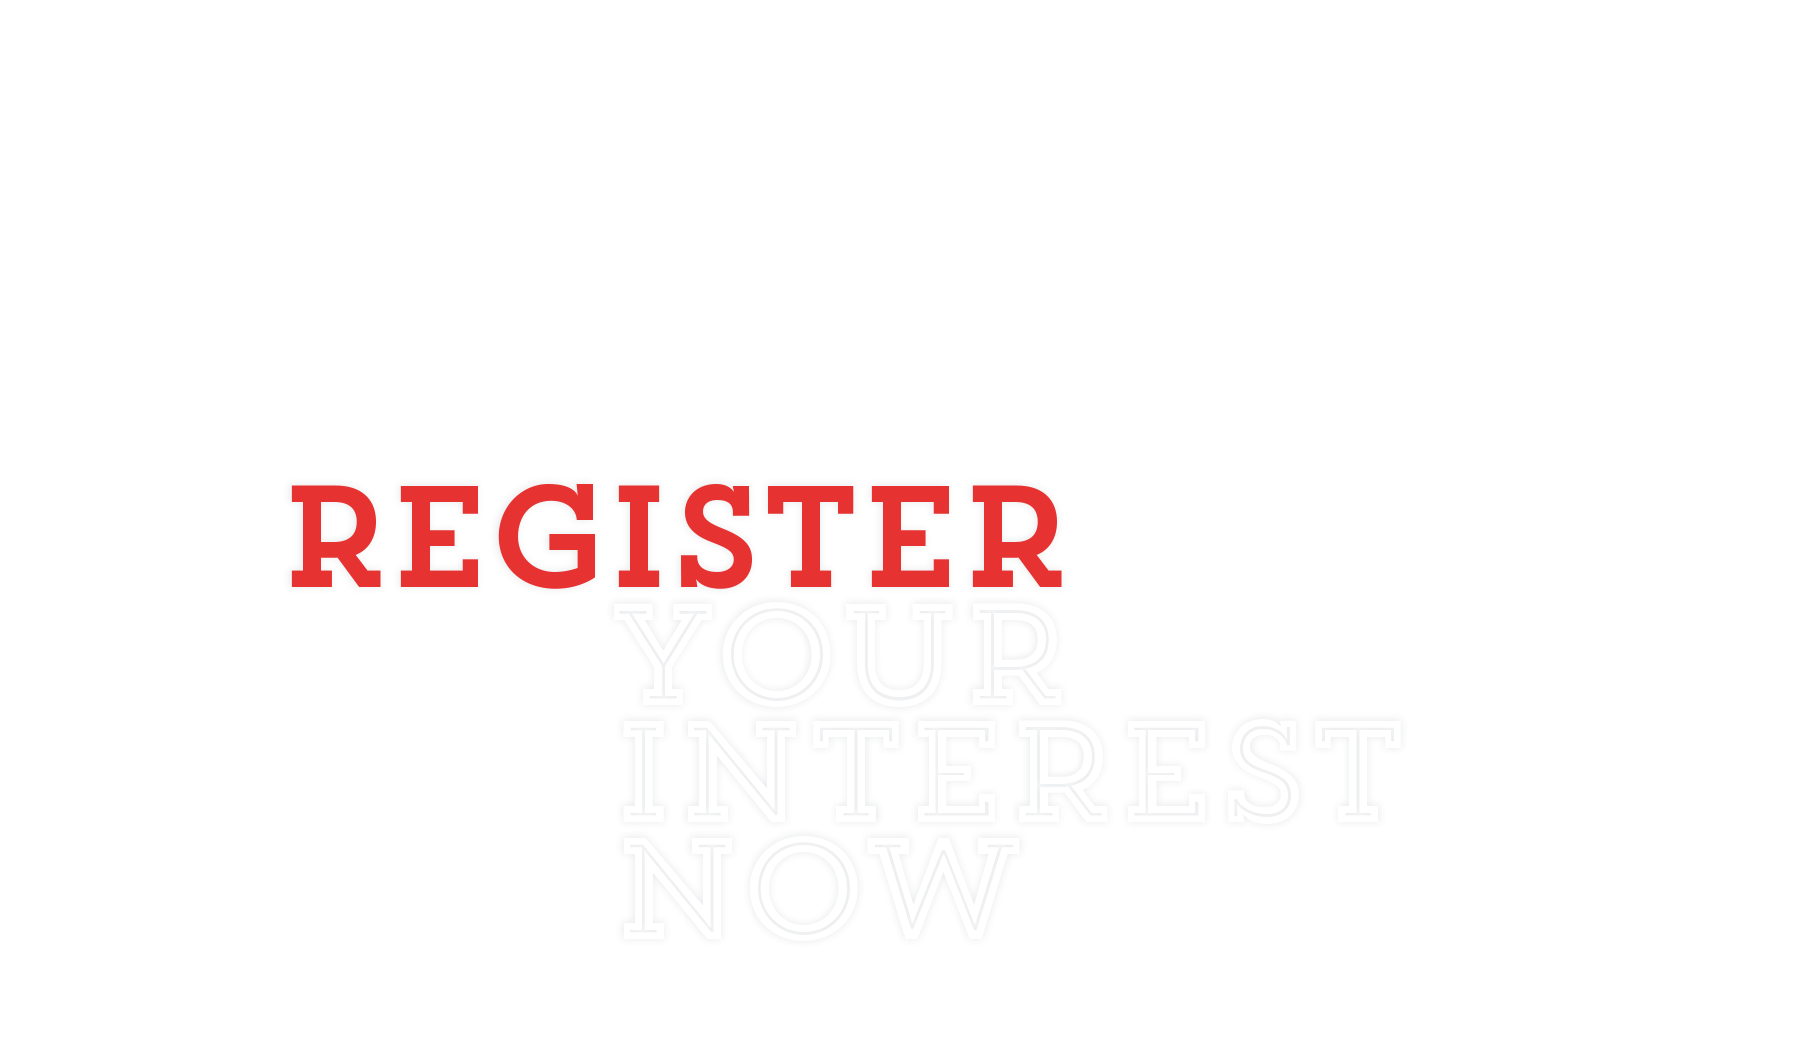 Thorton, register your interest